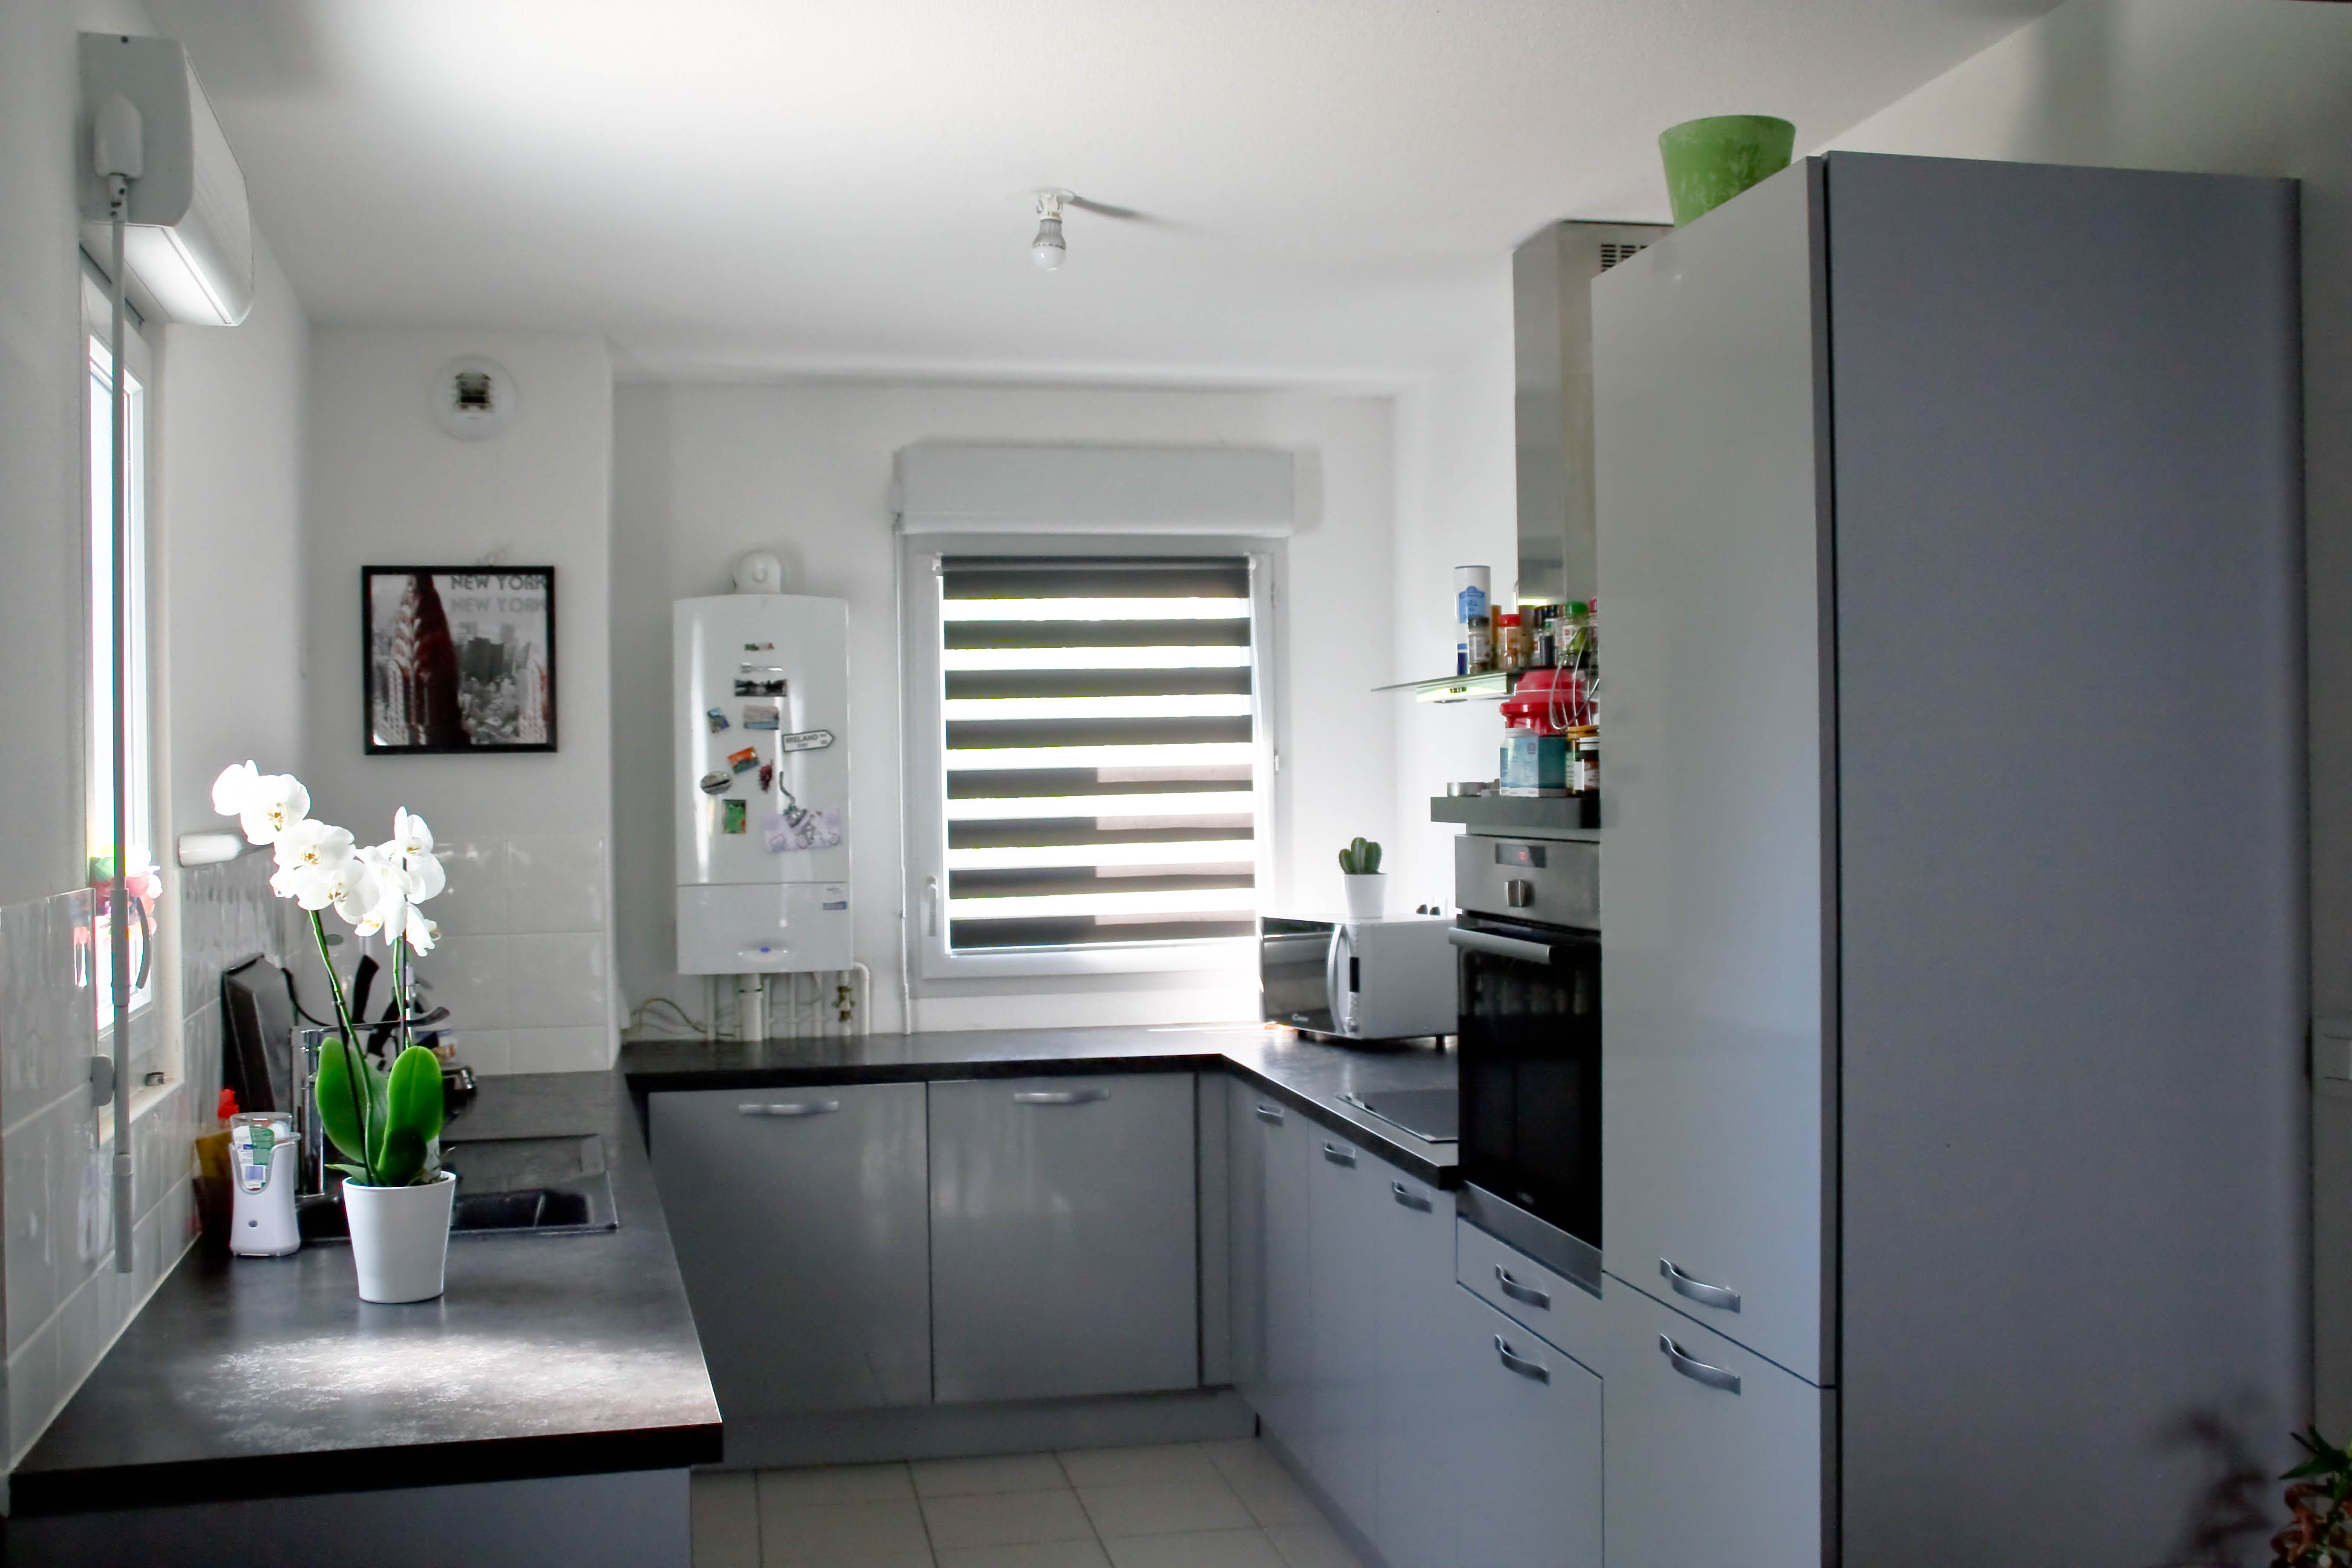 Appartement appartement t3 bbc proche commerces france for Cuisine equipee 4m2